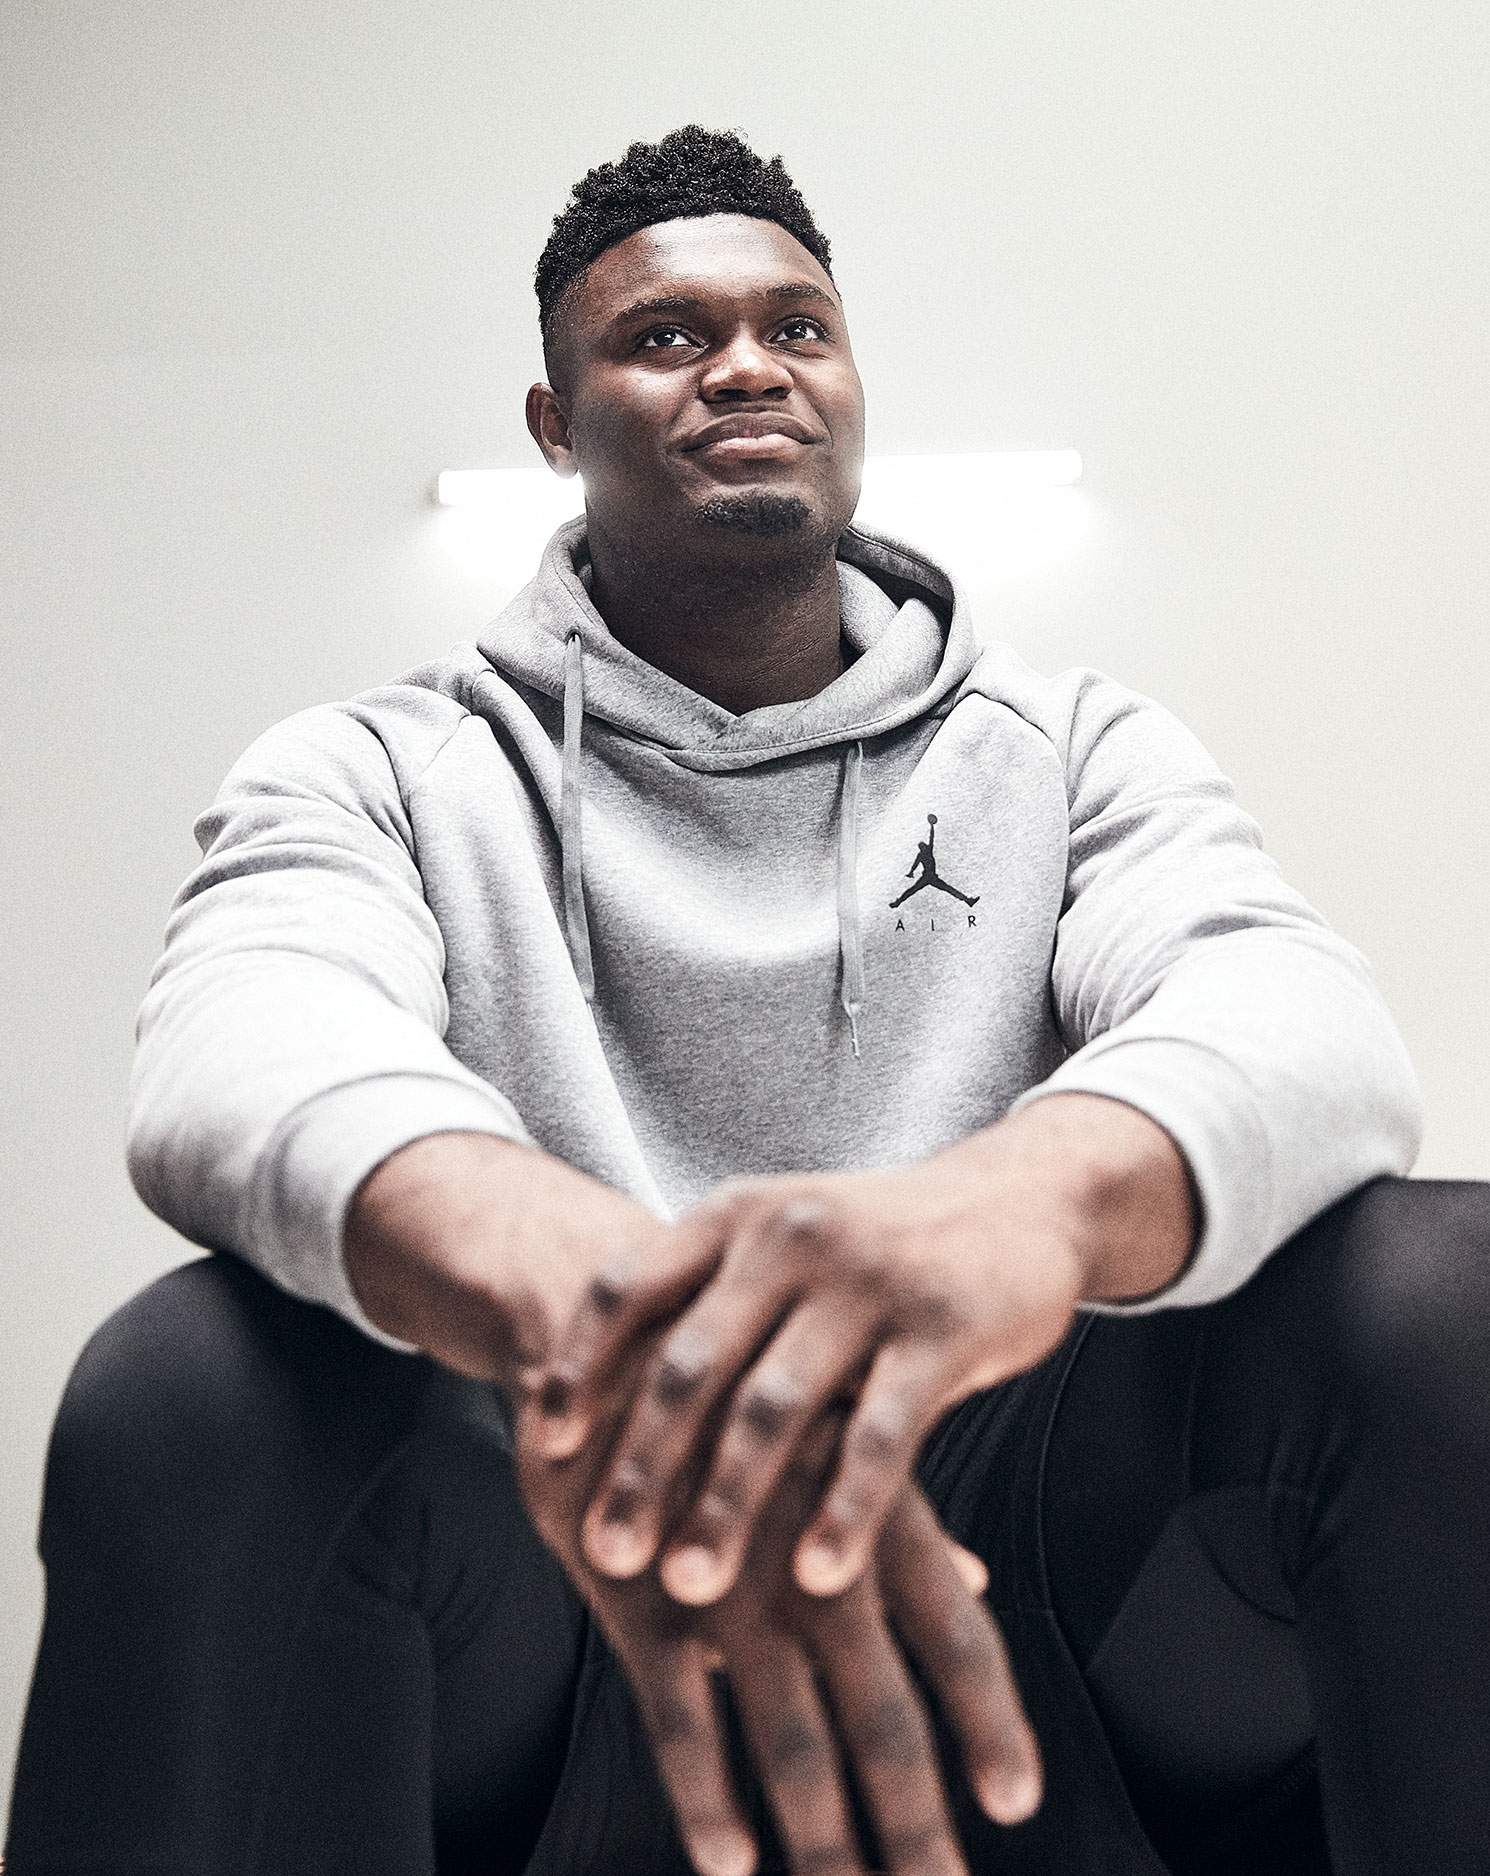 ZION WILLIAMSON - NBA